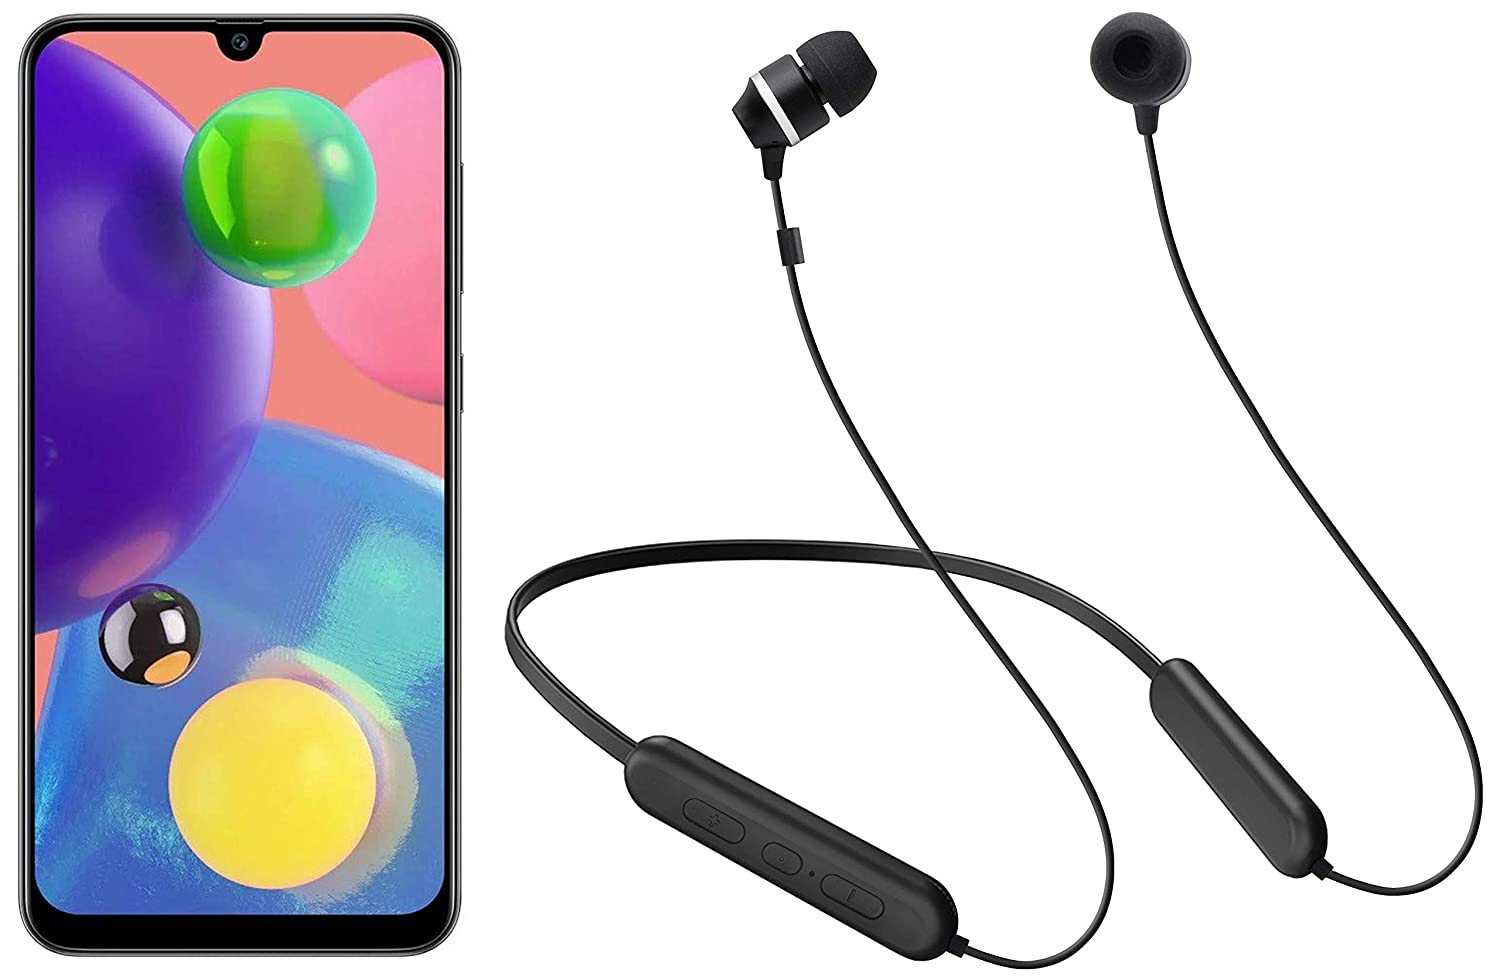 Samsung A70s 8GB RAM + Samsung Wireless Earphone with Flexible Neck Band